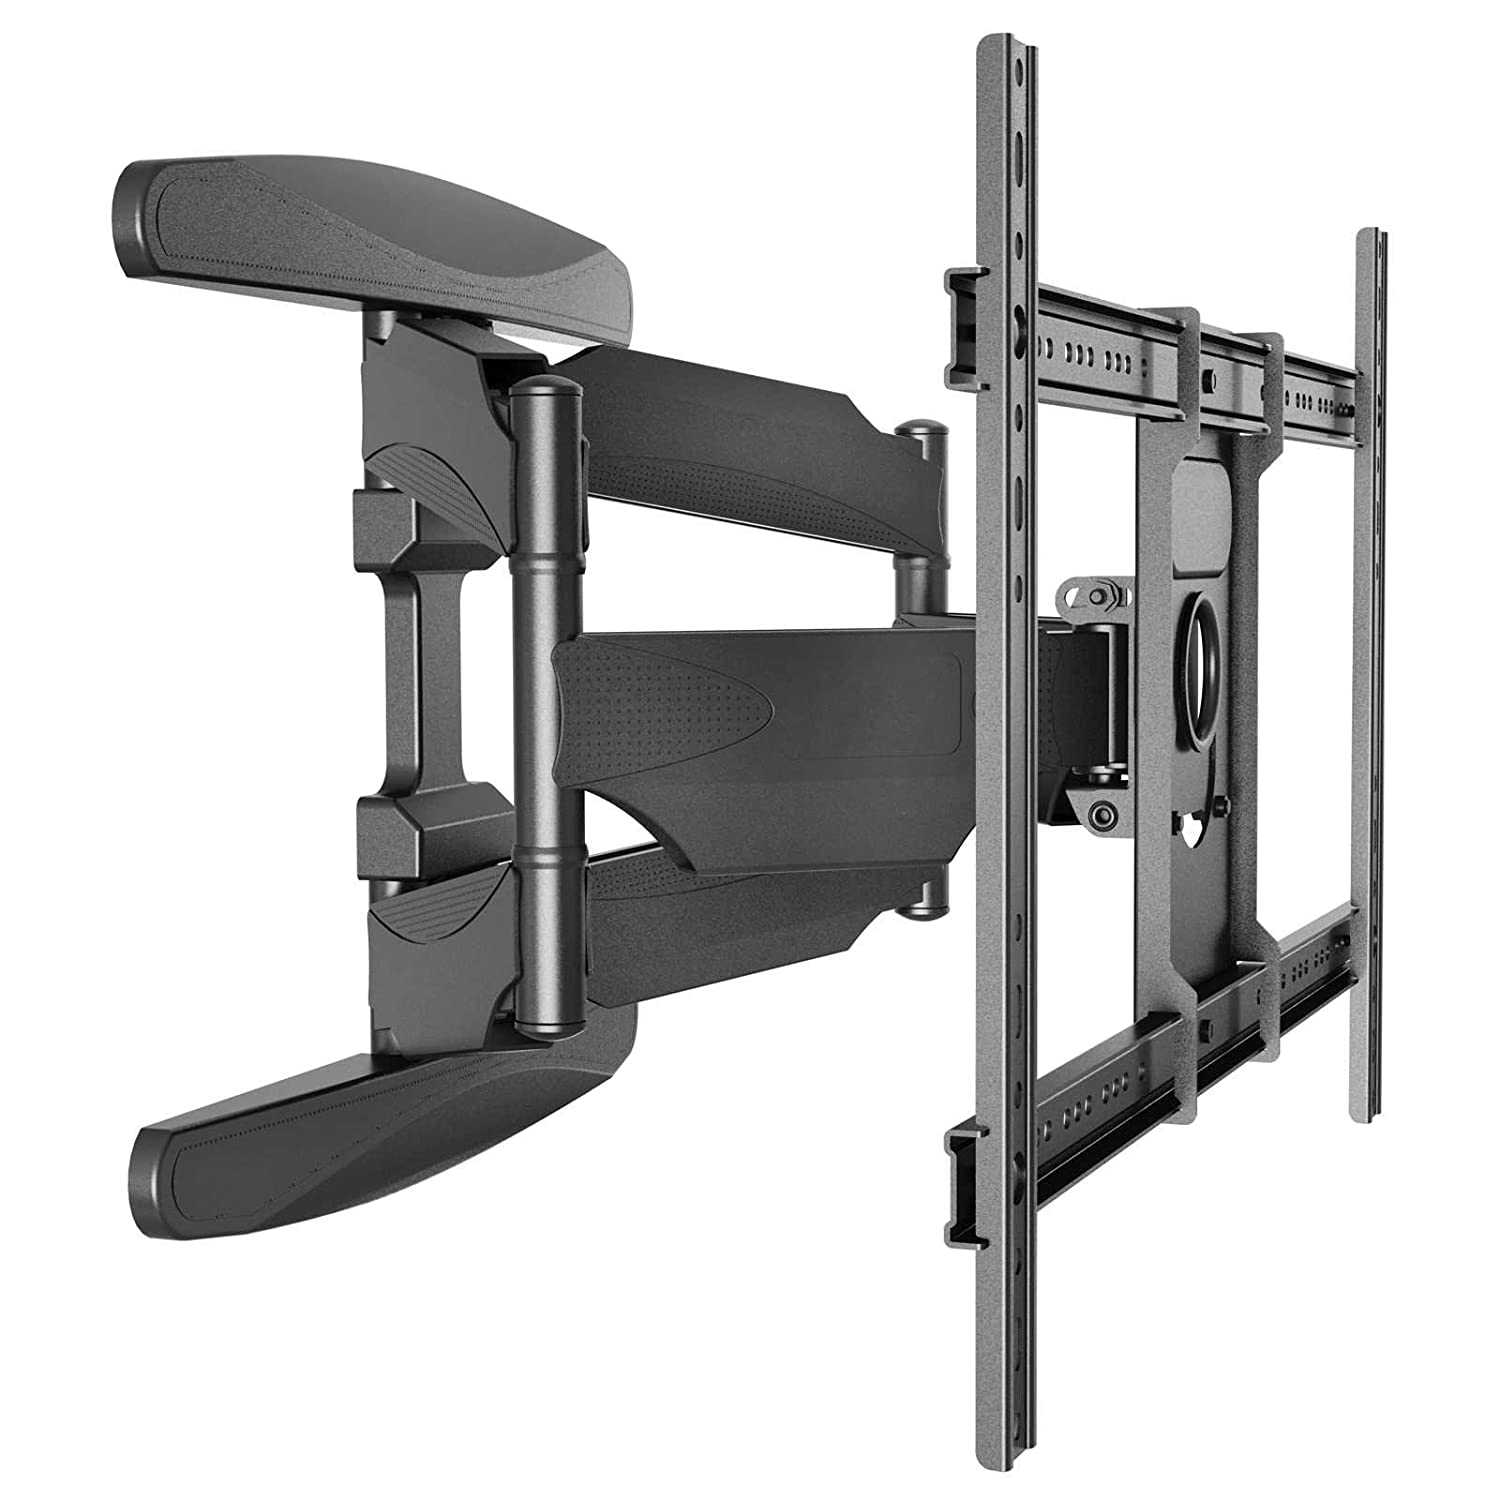 Heavy Duty Full Motion Tv Wall Mount Articulating Ob Fit Electric Treadmill W Belt Massager Best Seller 1045 Swivel Bracket Fits Flat Screen Televisions From 42 To 70 Vesa 400 X 600 Compatible